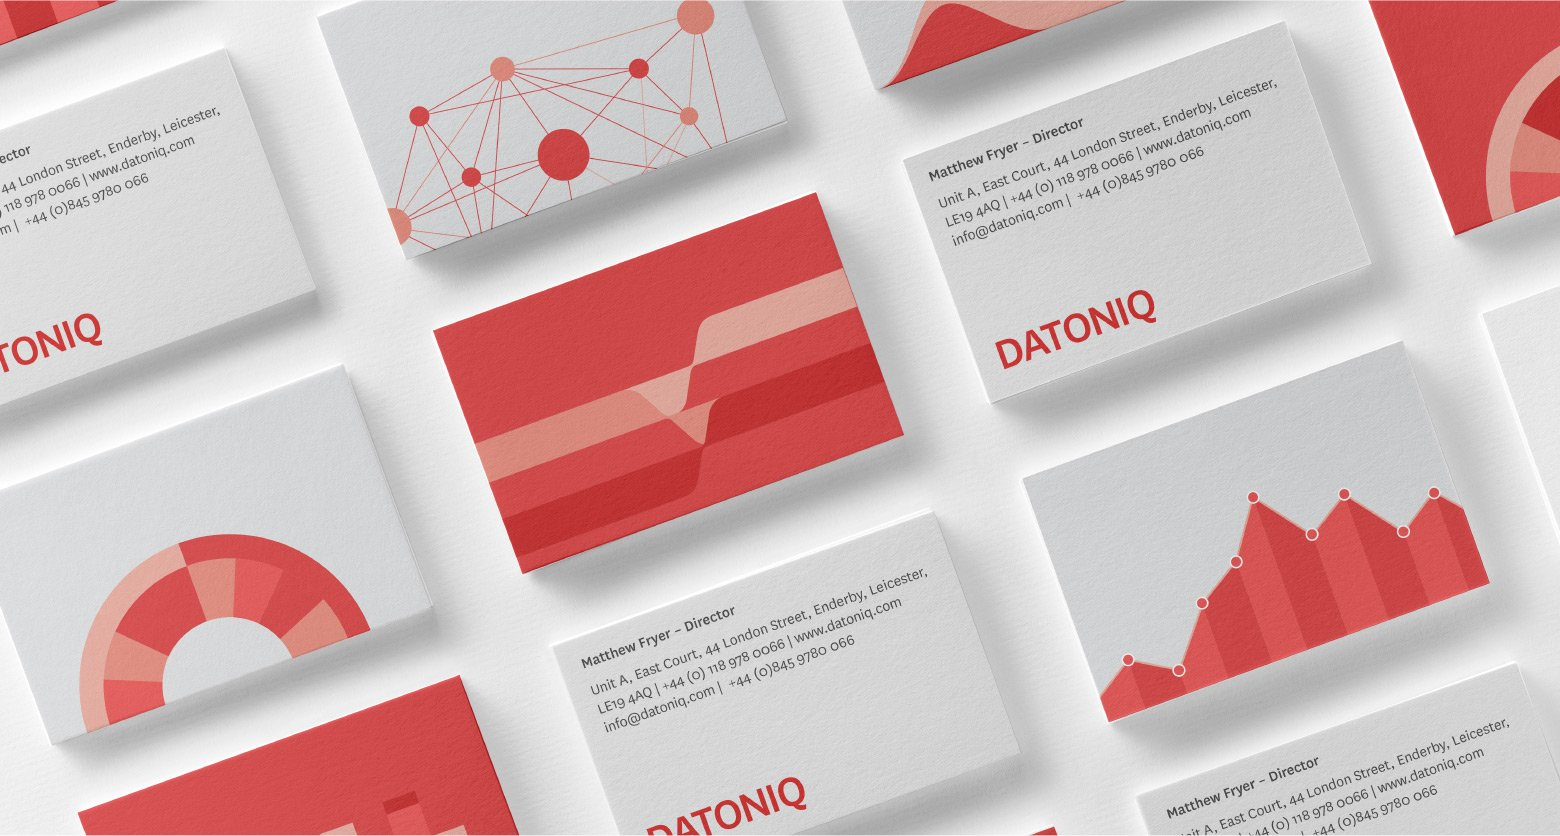 Datoniq Business Card